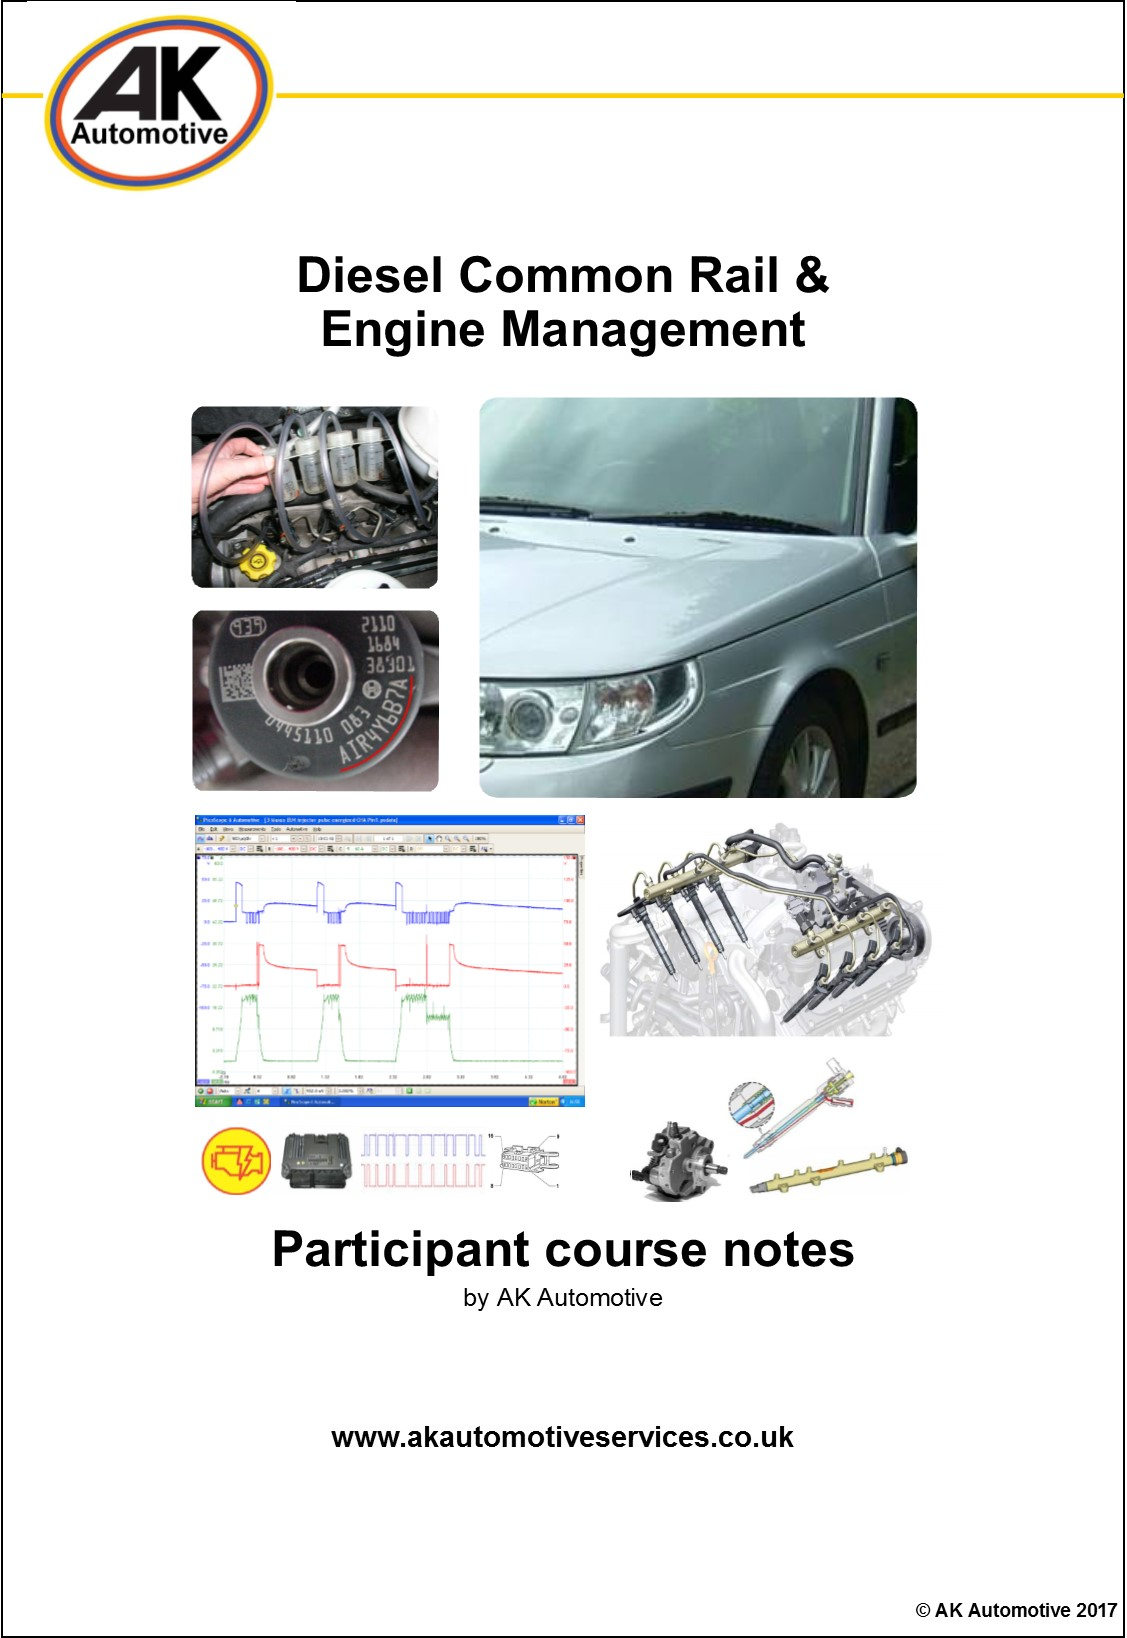 car electrical wiring diagrams 2007 ford mustang radio diagram ak automotive diesel common rail & engine management training course